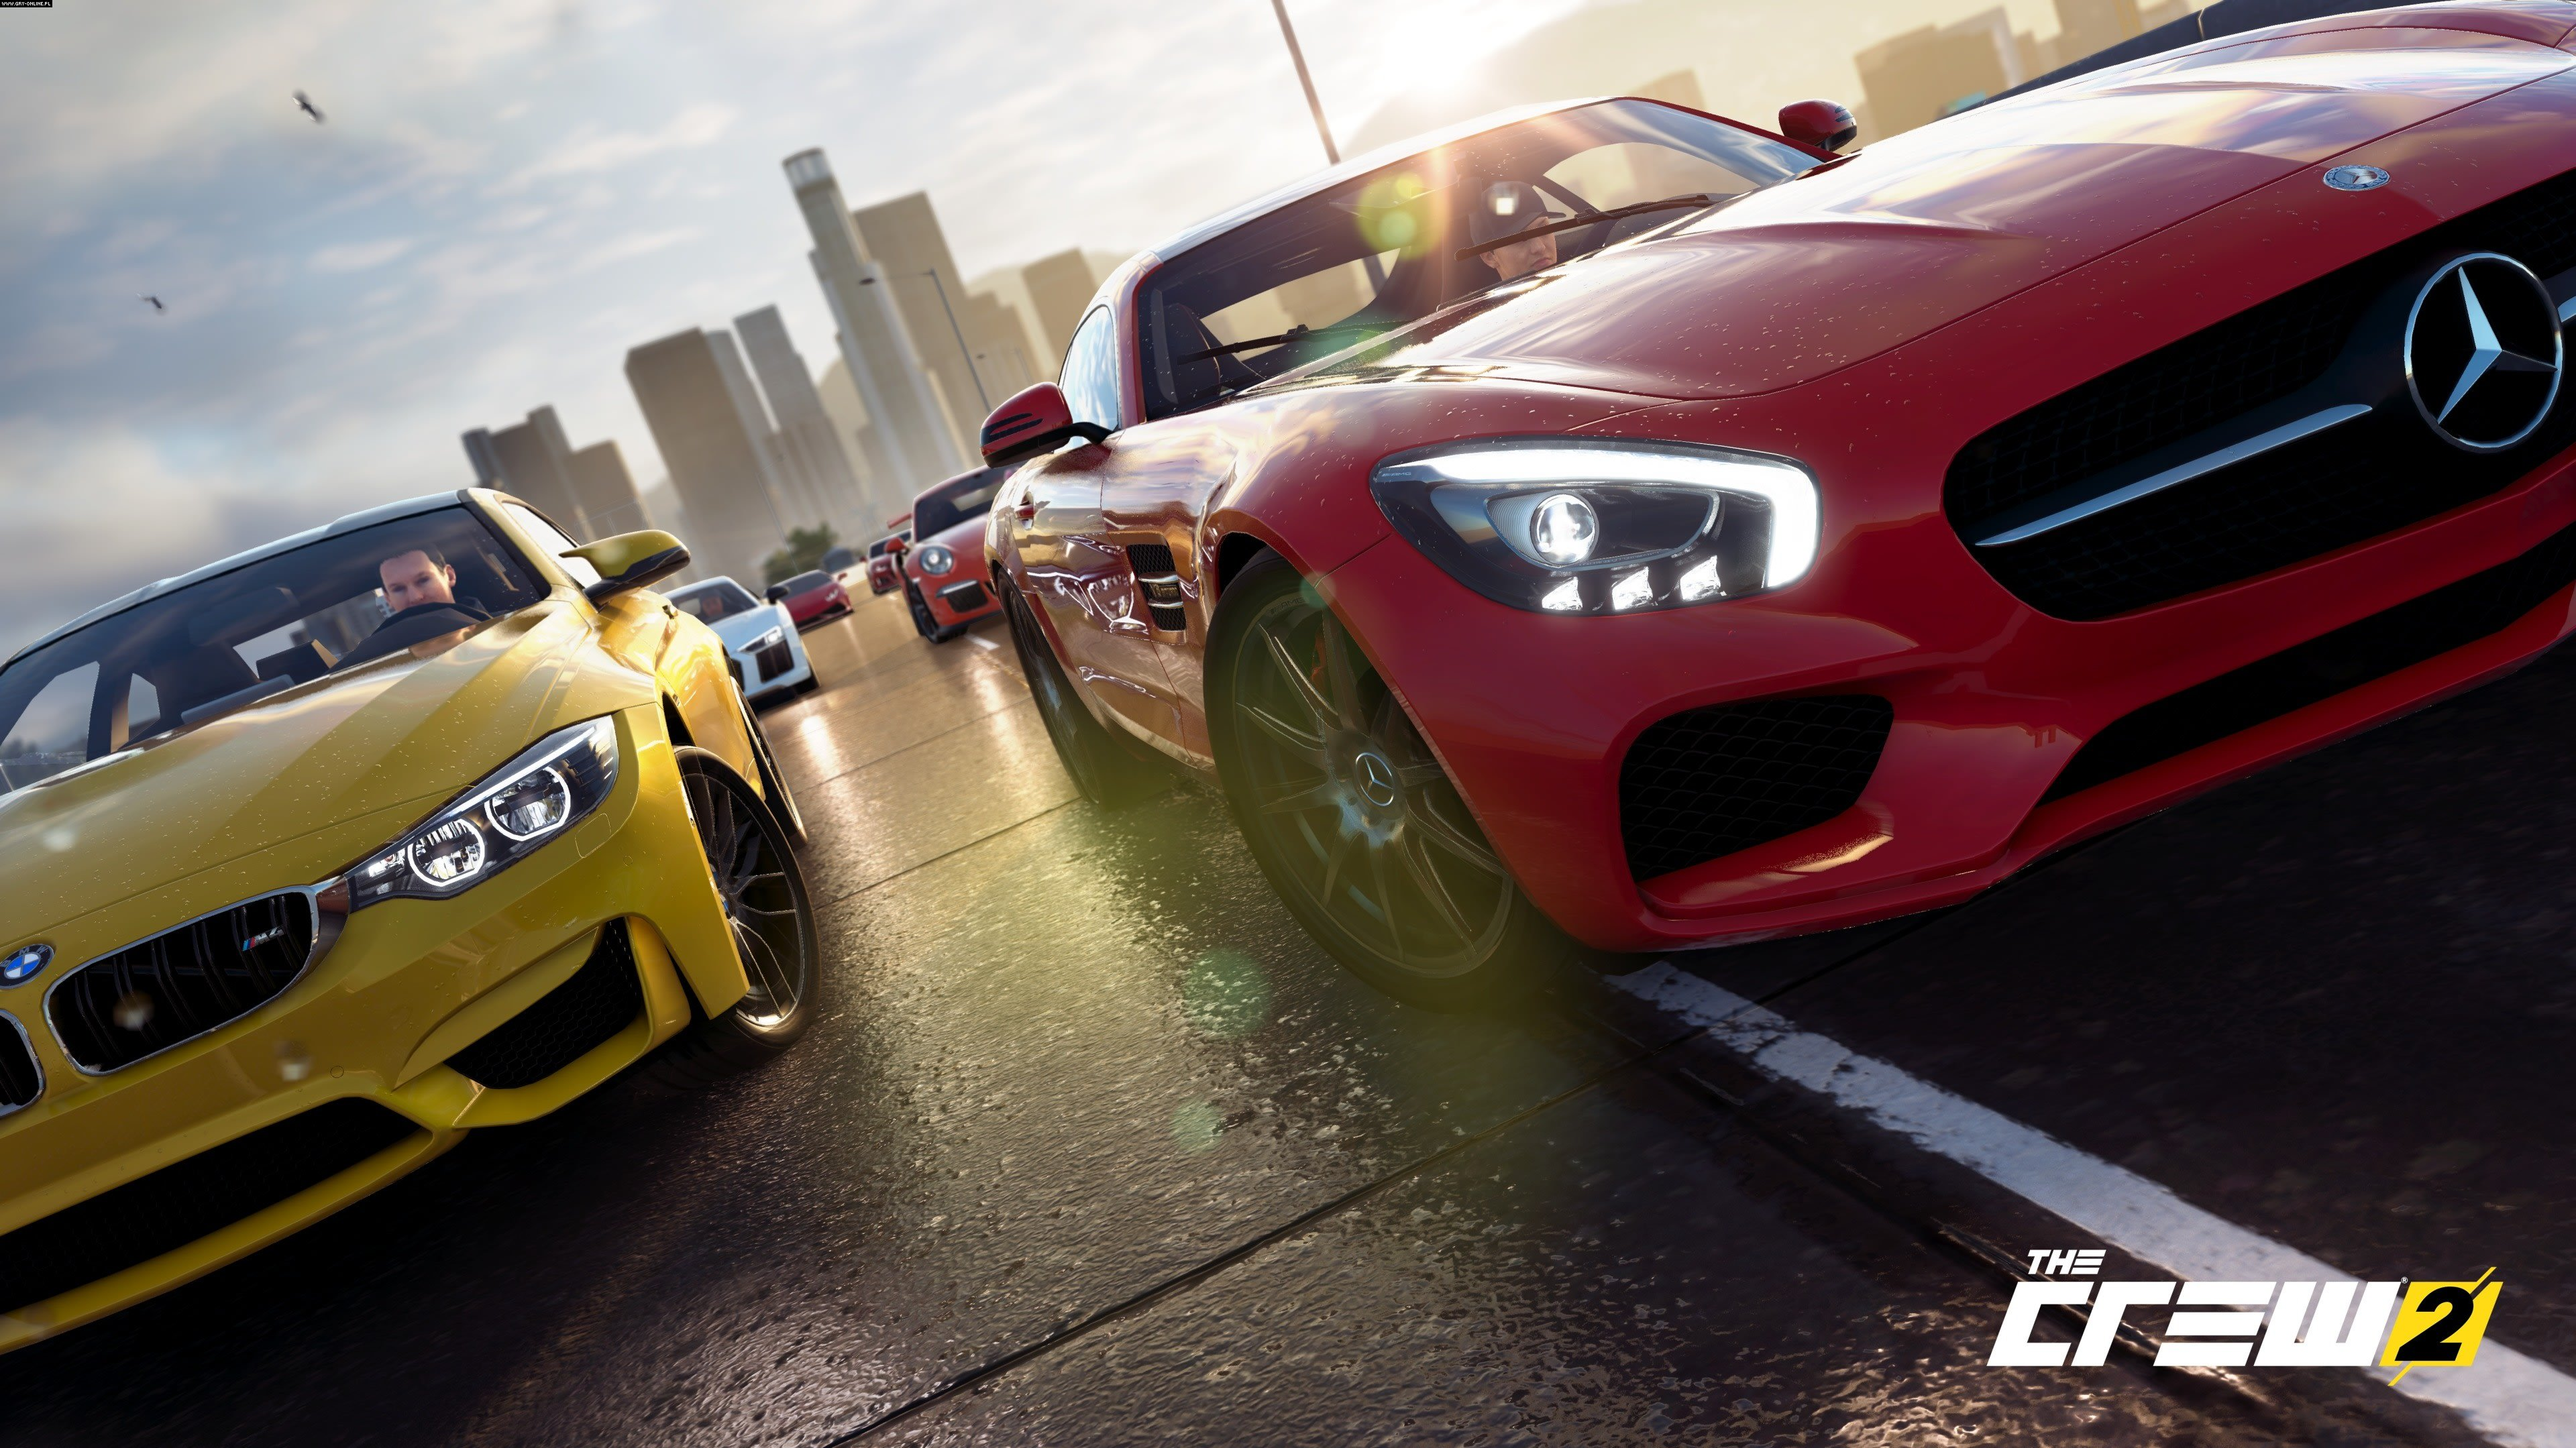 The Crew 2 - screenshots gallery - screenshot 4/28 - gamepressure com